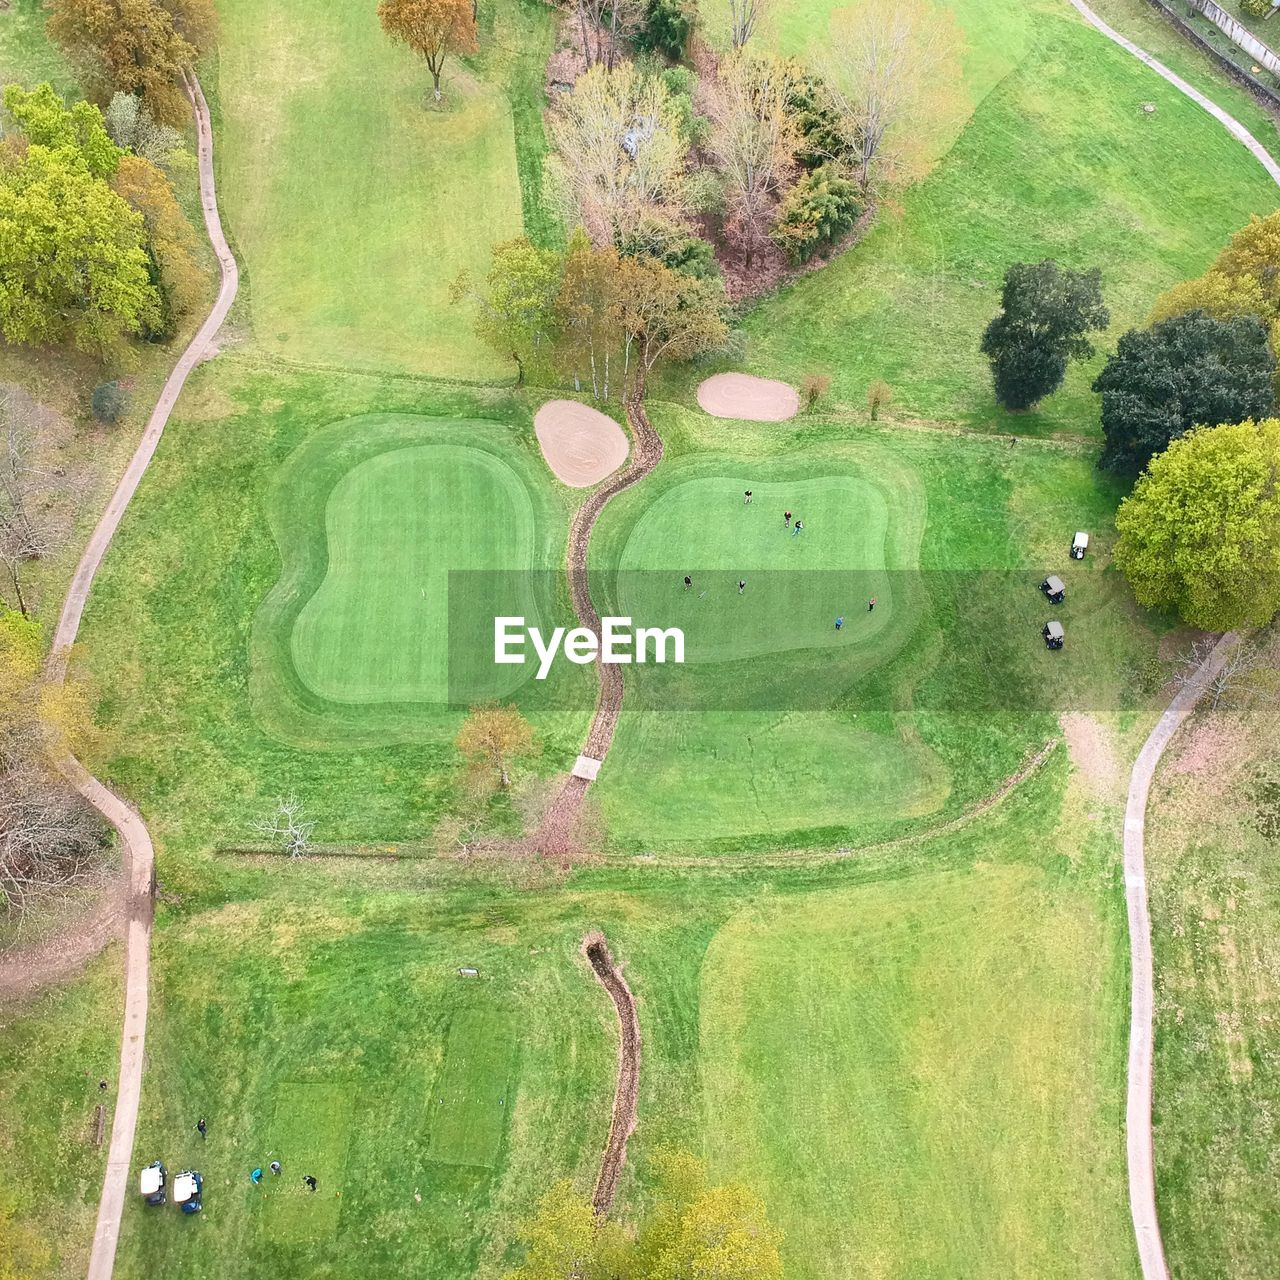 plant, green color, tree, day, grass, activity, golf, nature, no people, aerial view, outdoors, high angle view, beauty in nature, golf course, leisure activity, sport, growth, water, landscape, sand trap, green - golf course